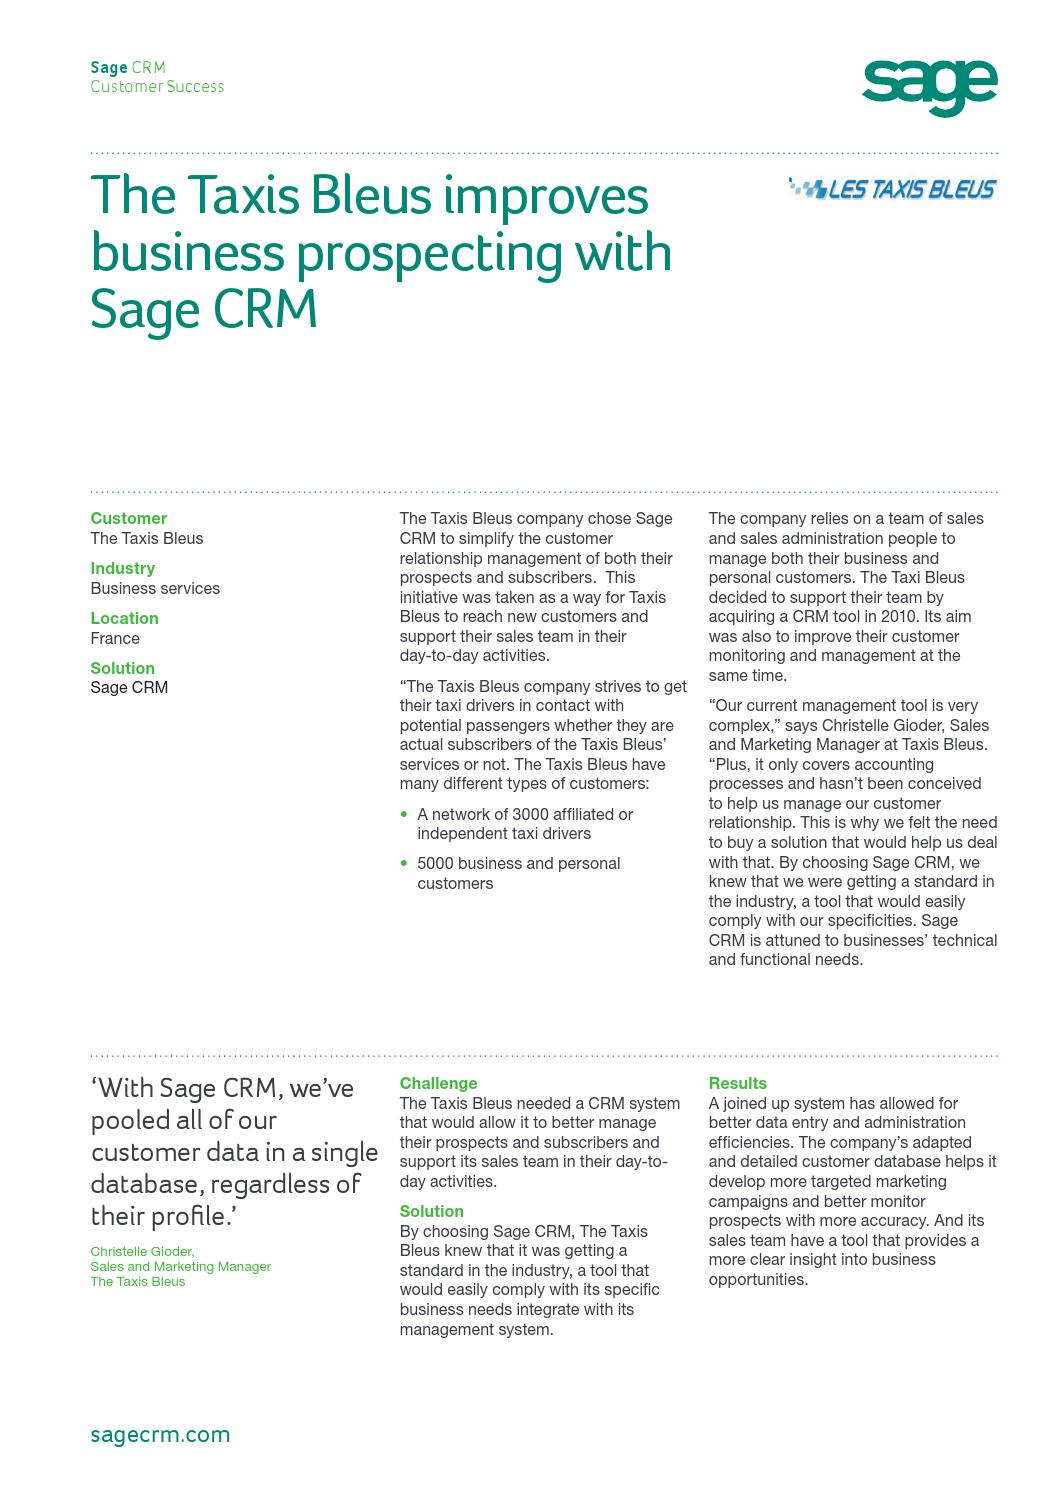 Sage CRM success story - The Taxis Bleus by Sage CRM - issuu